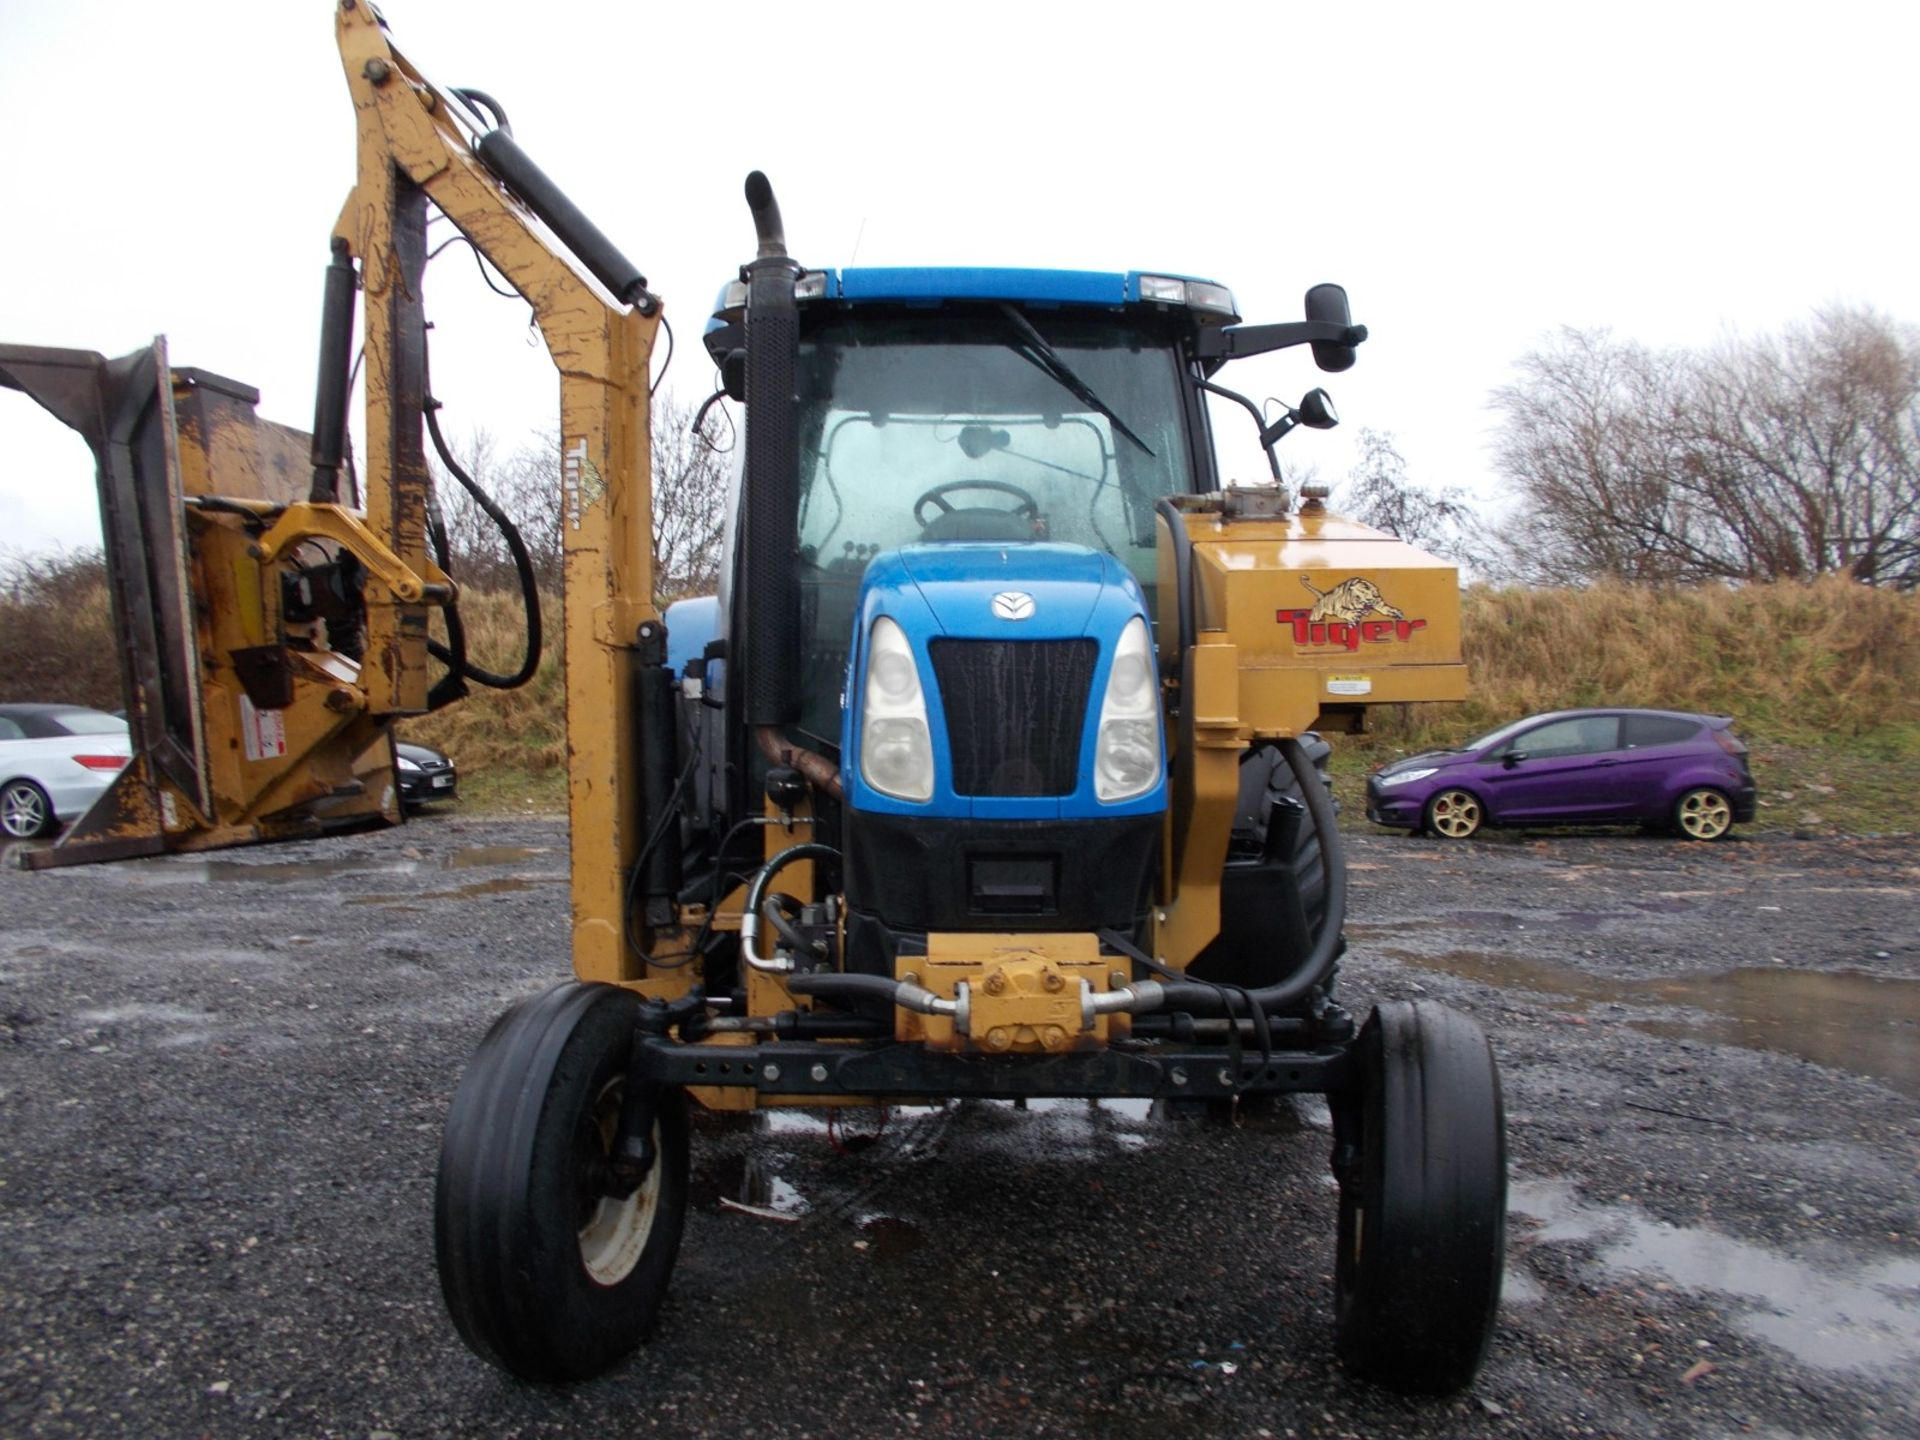 2003 NEW HOLLAND TS100A TRACTOR WITH MOWER ATTACHMENT, 4.5 LITRE 100HP TURBO DIESEL *PLUS VAT* - Image 3 of 24